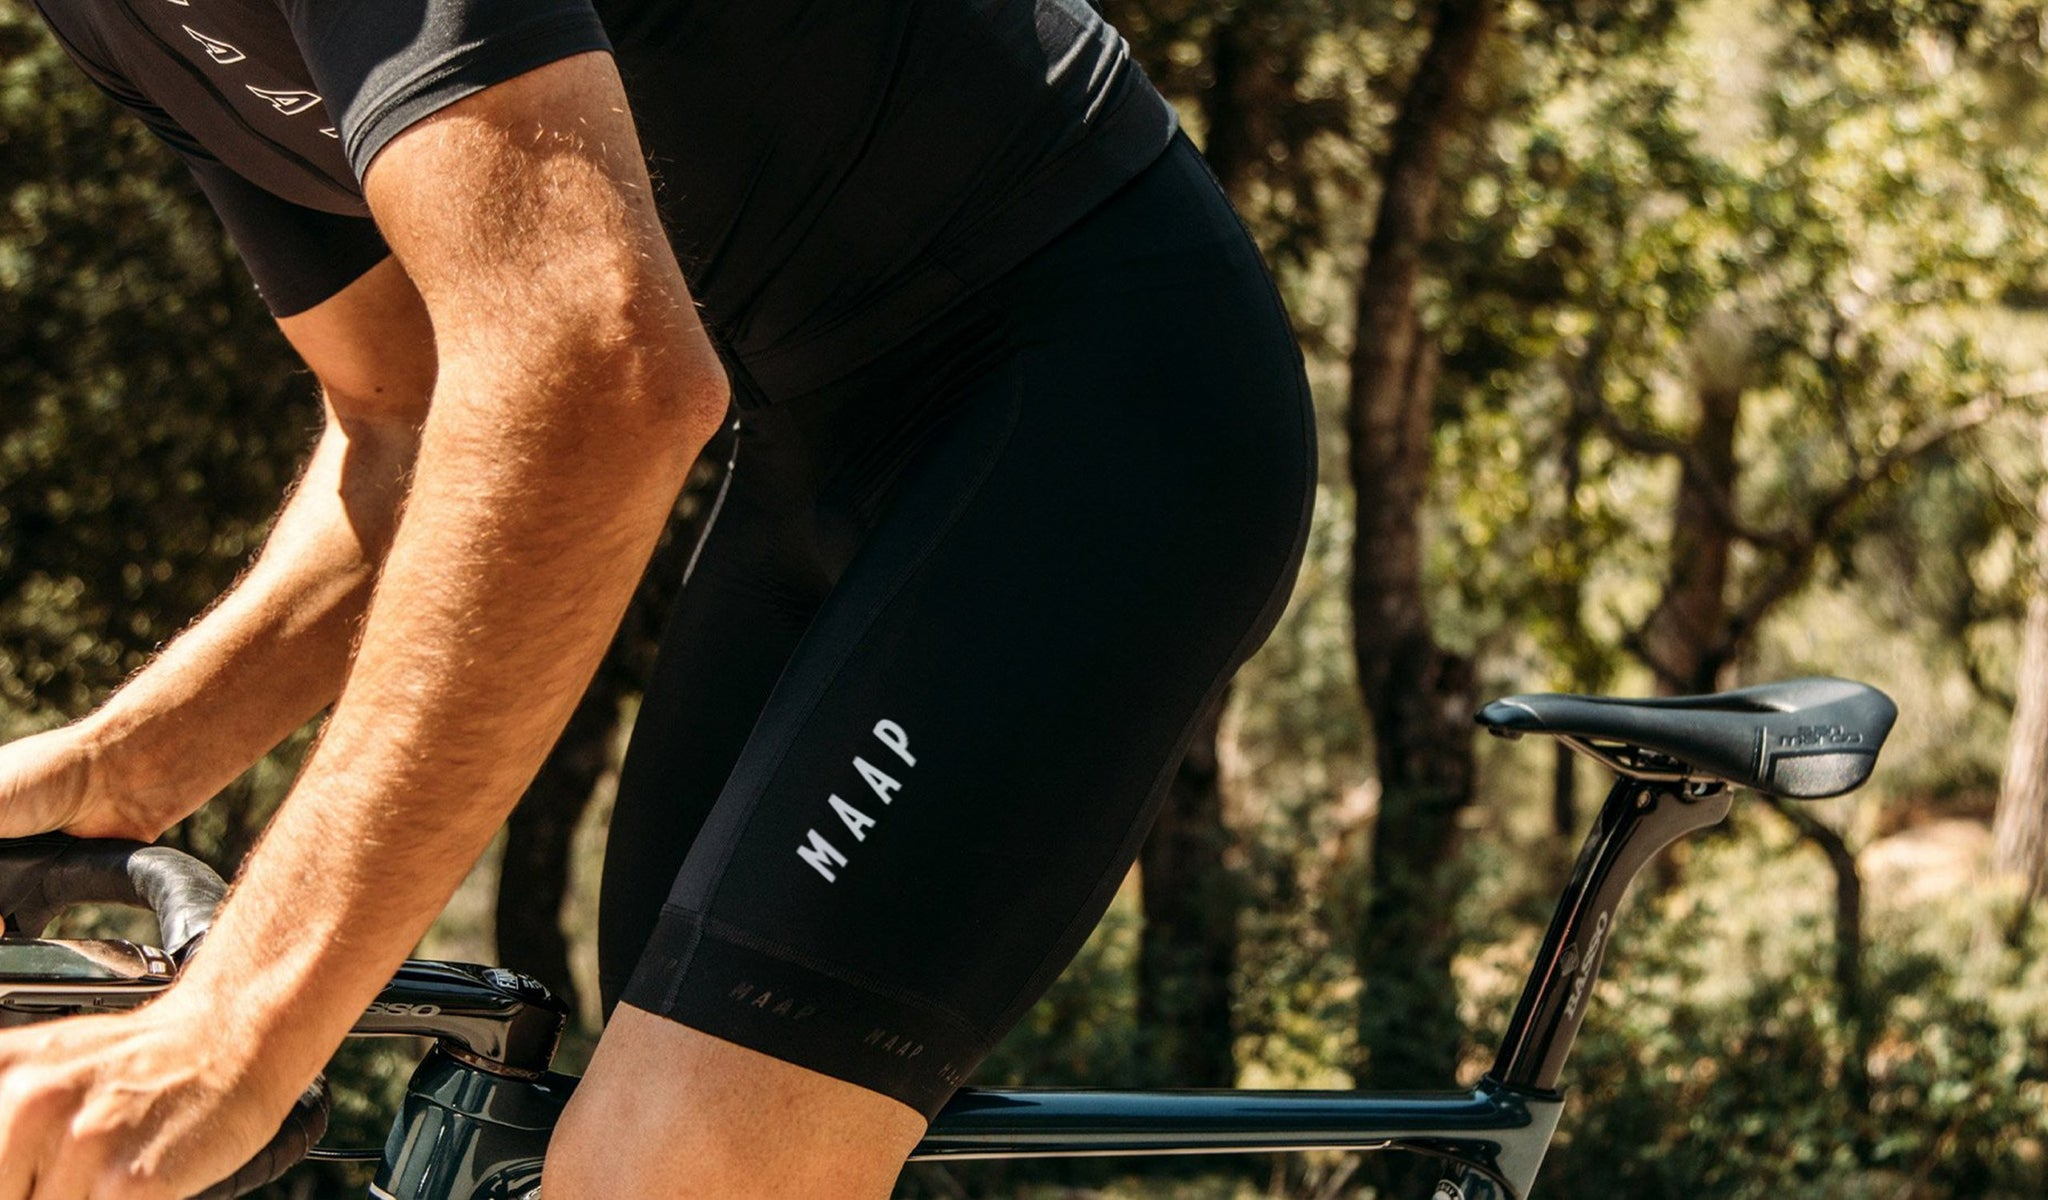 MAAP Training Cycling Bib Shorts in Black for everyday riding.